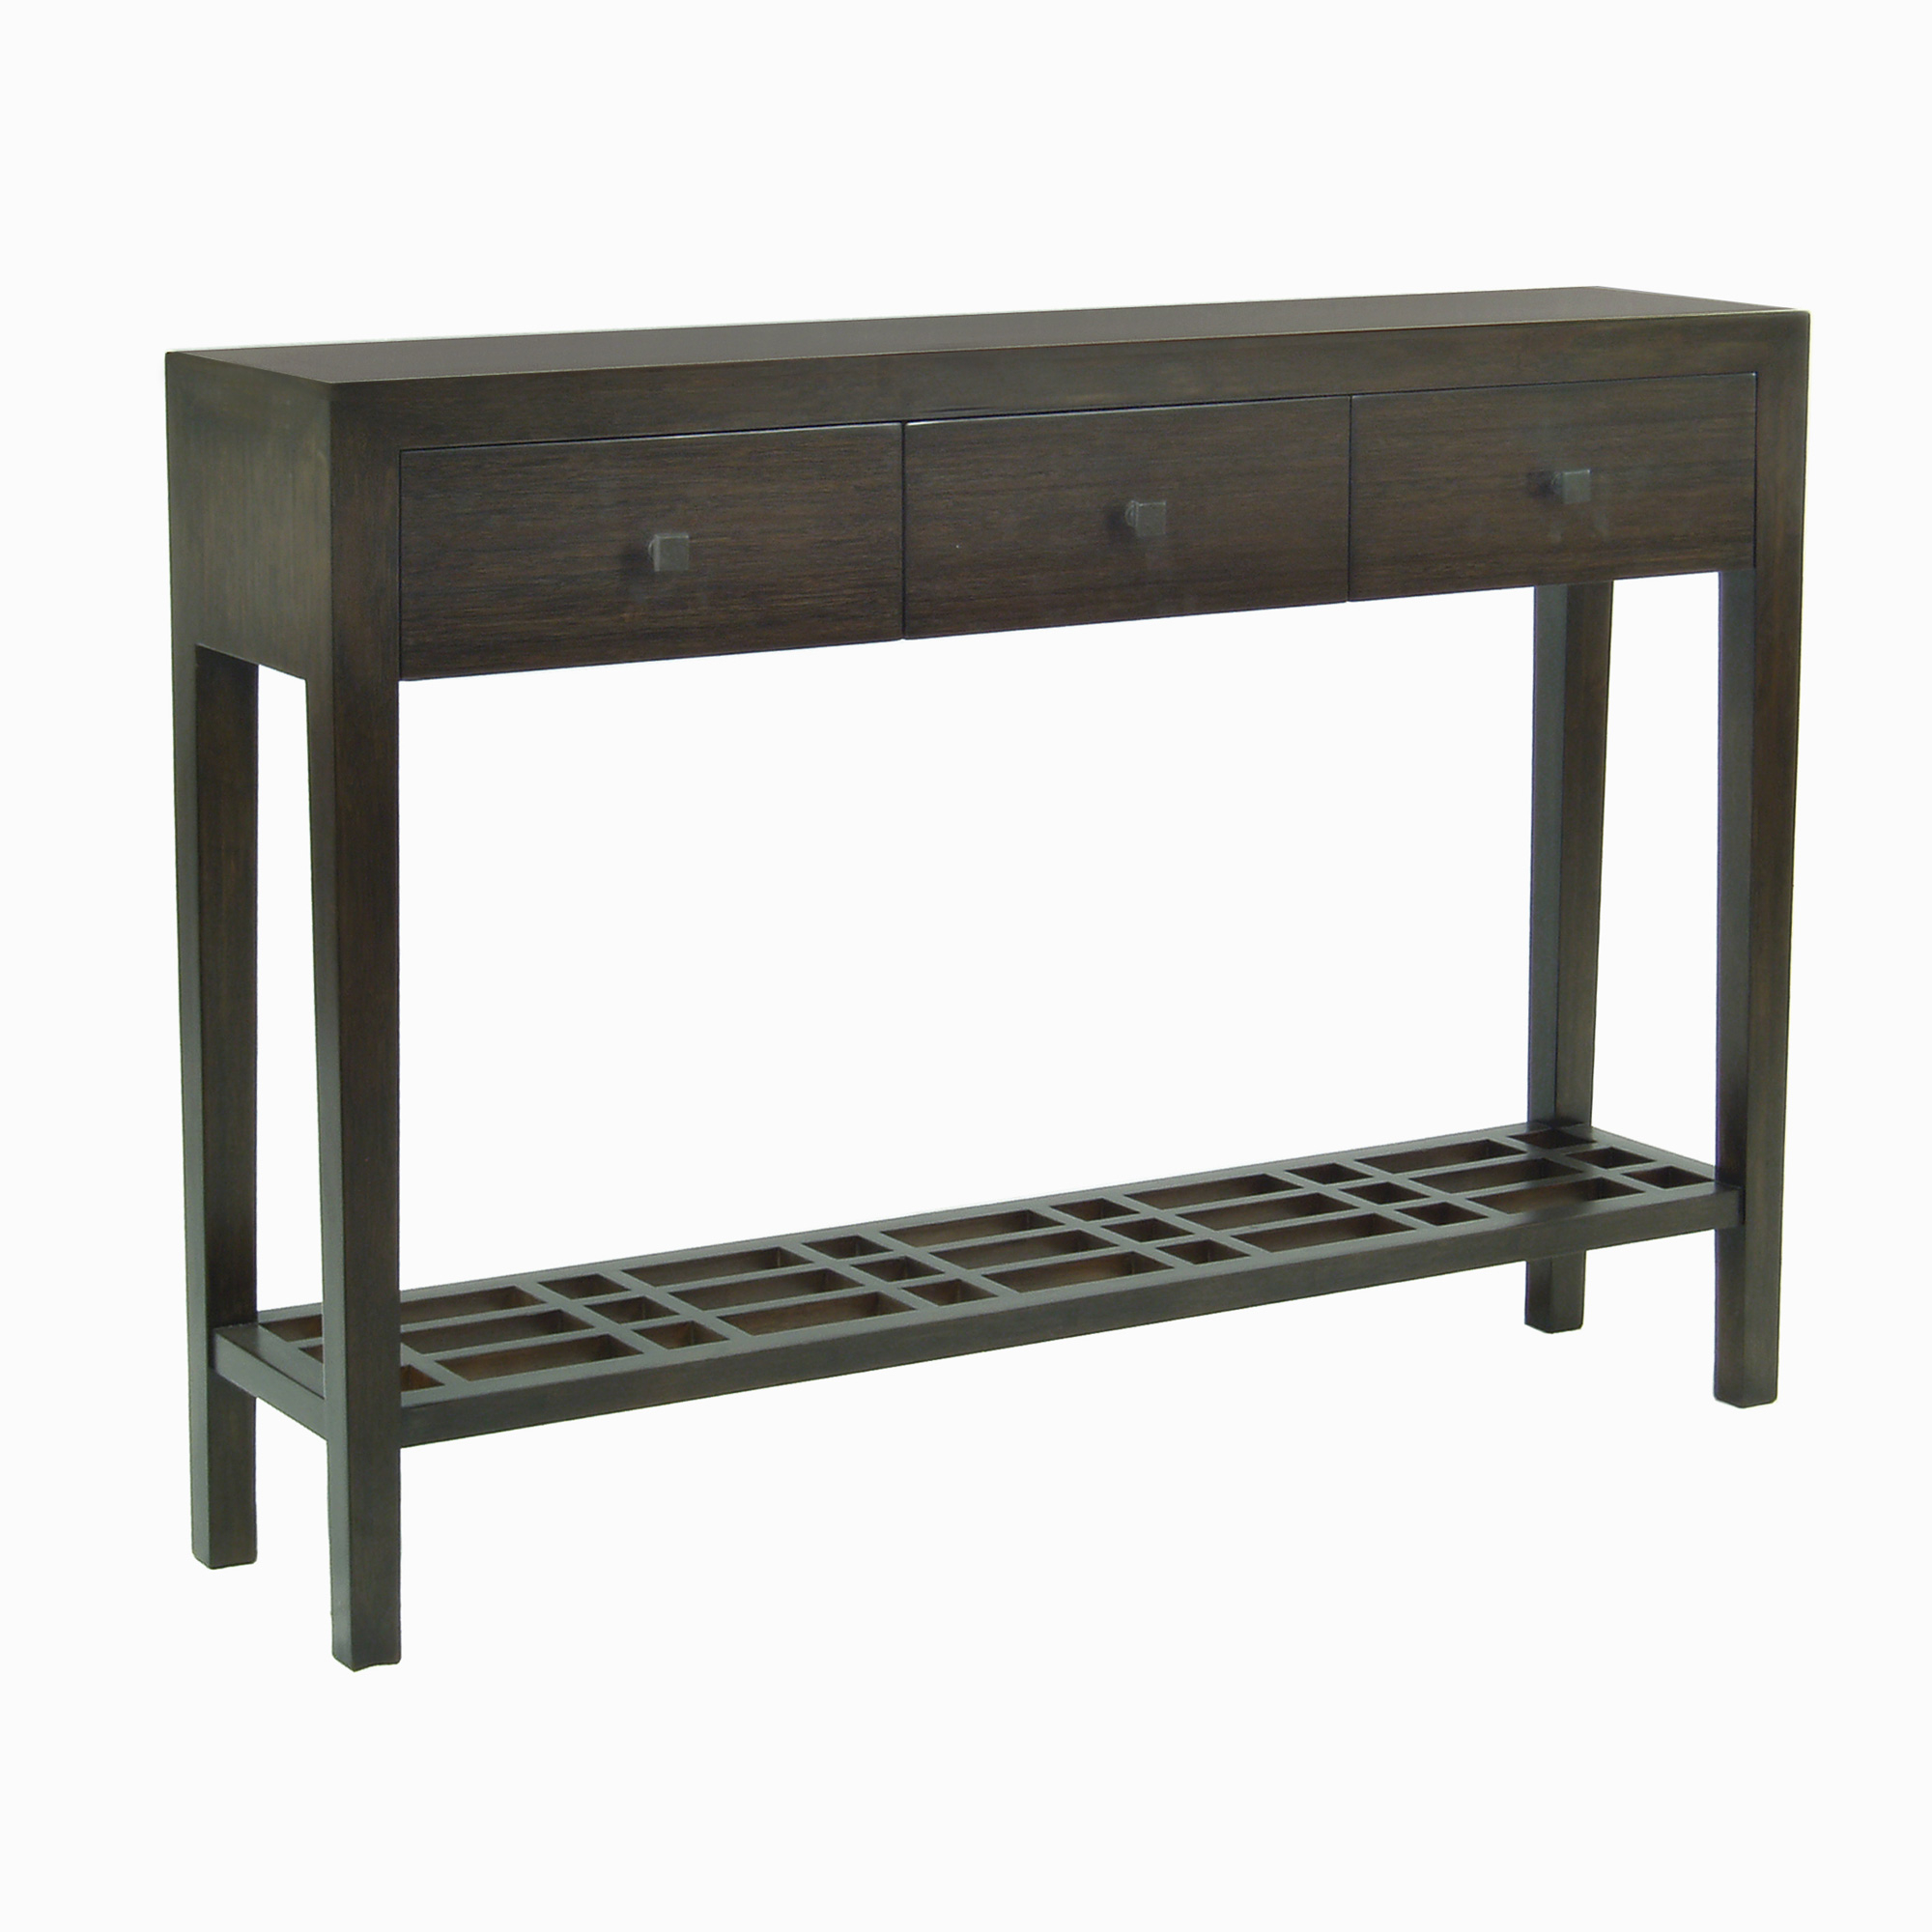 "Maria Yee Metro 48"" Console Table With Lattice Shelf"